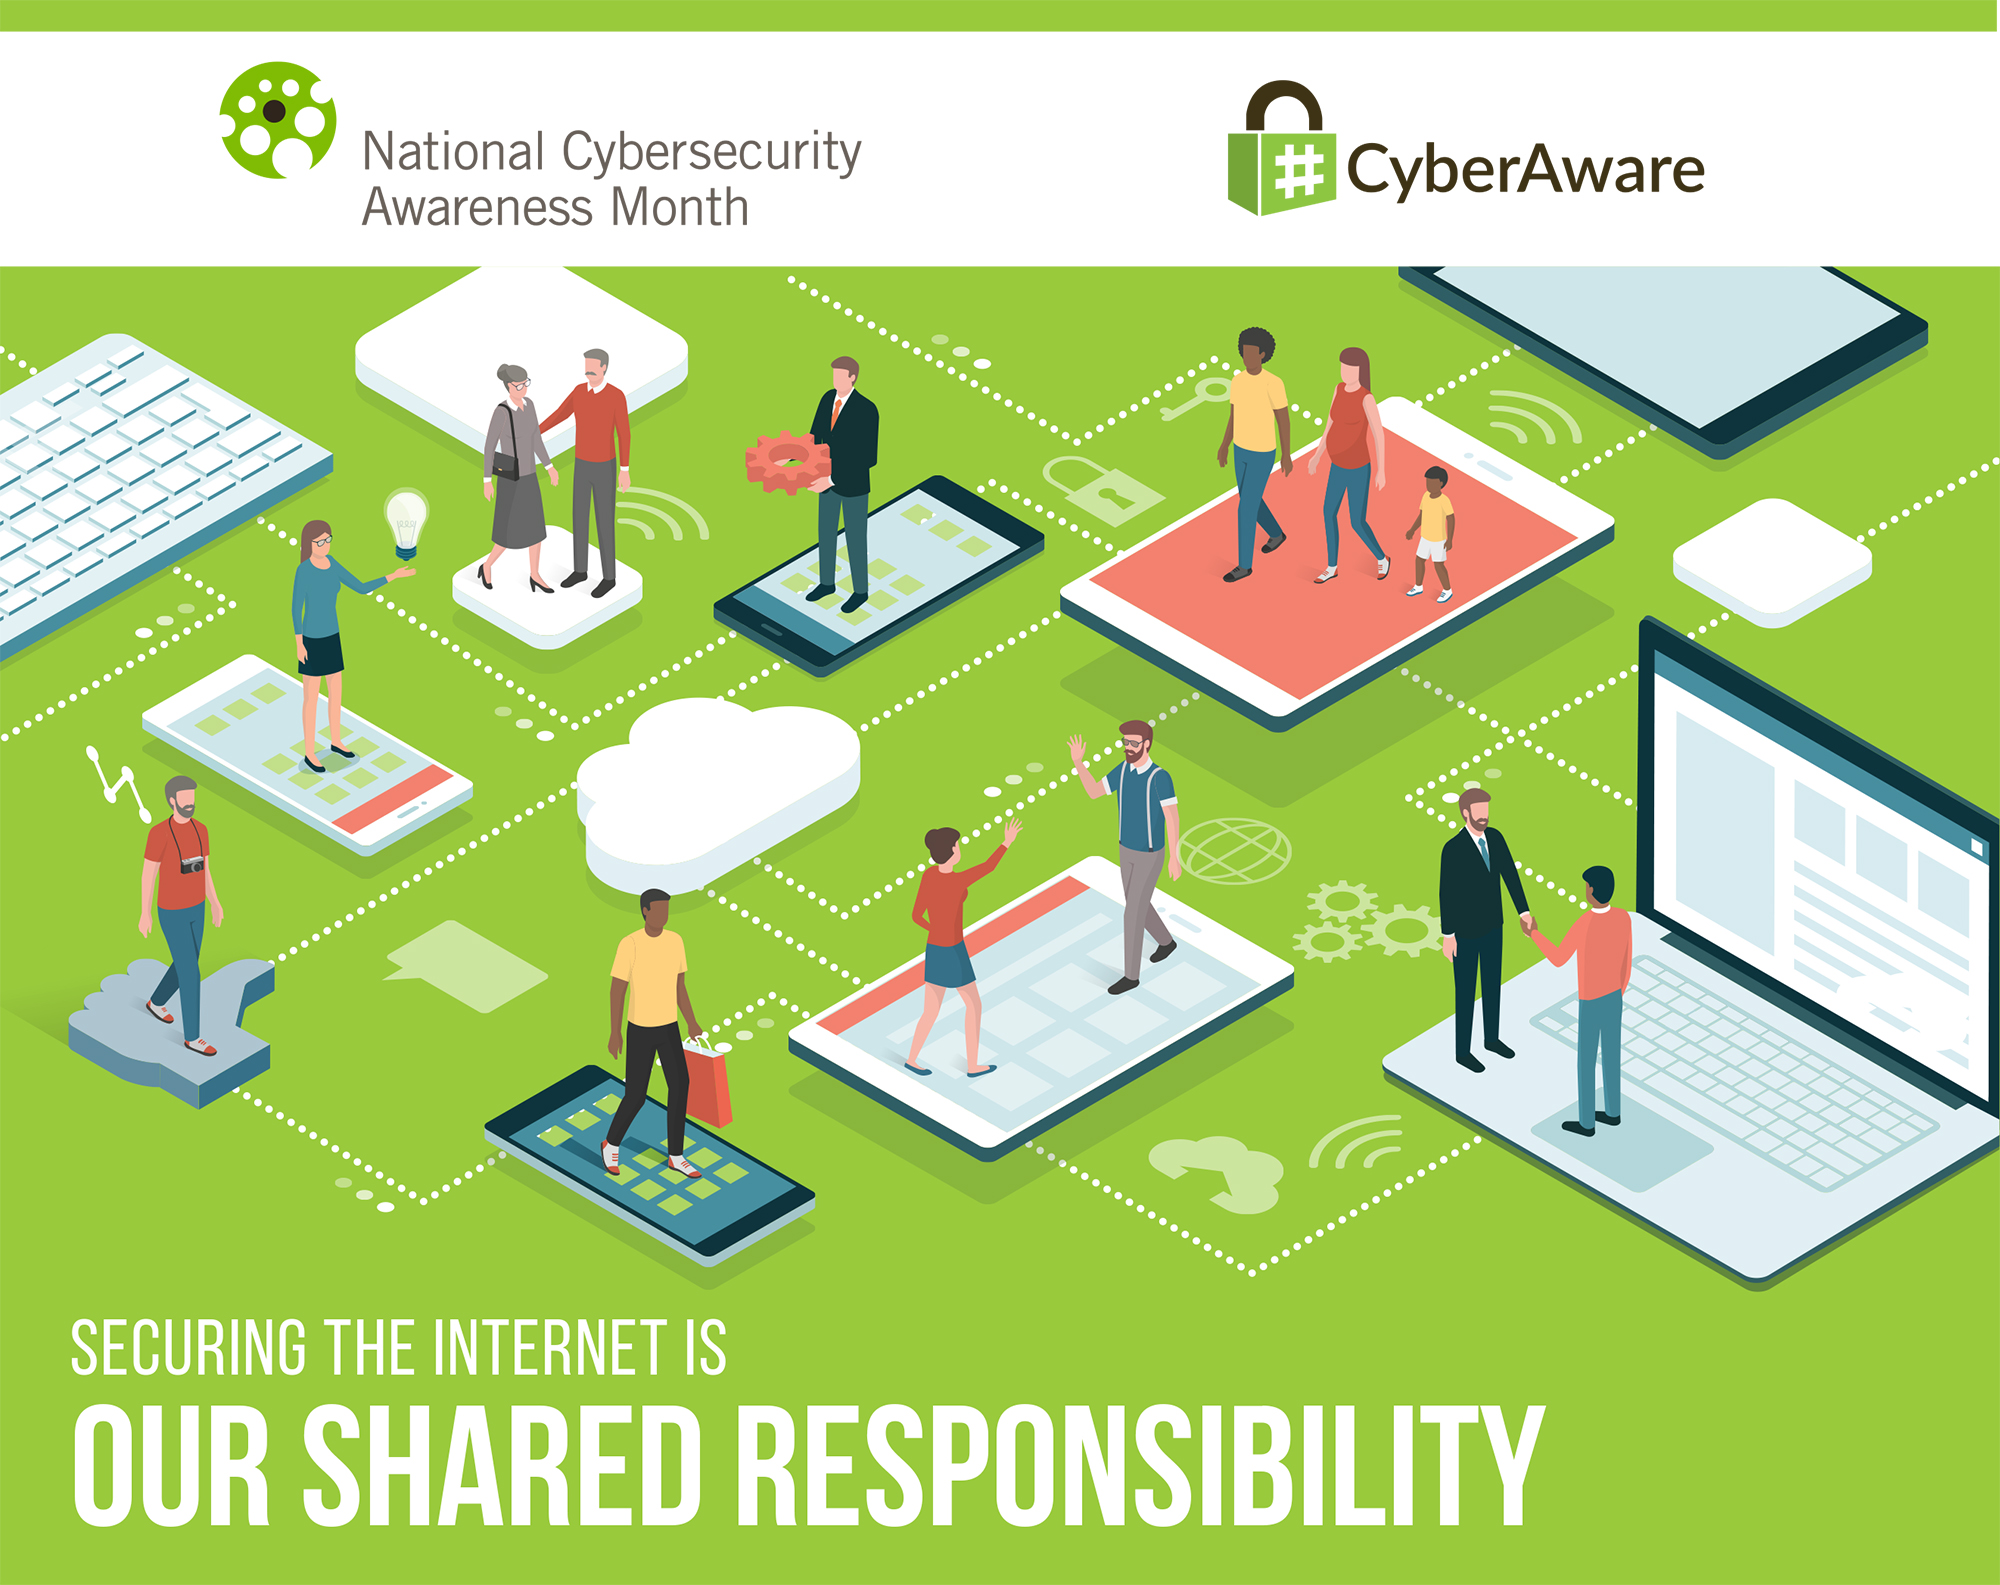 Graphic for National Cyber Security Awareness Month using art from NCSAM media package.